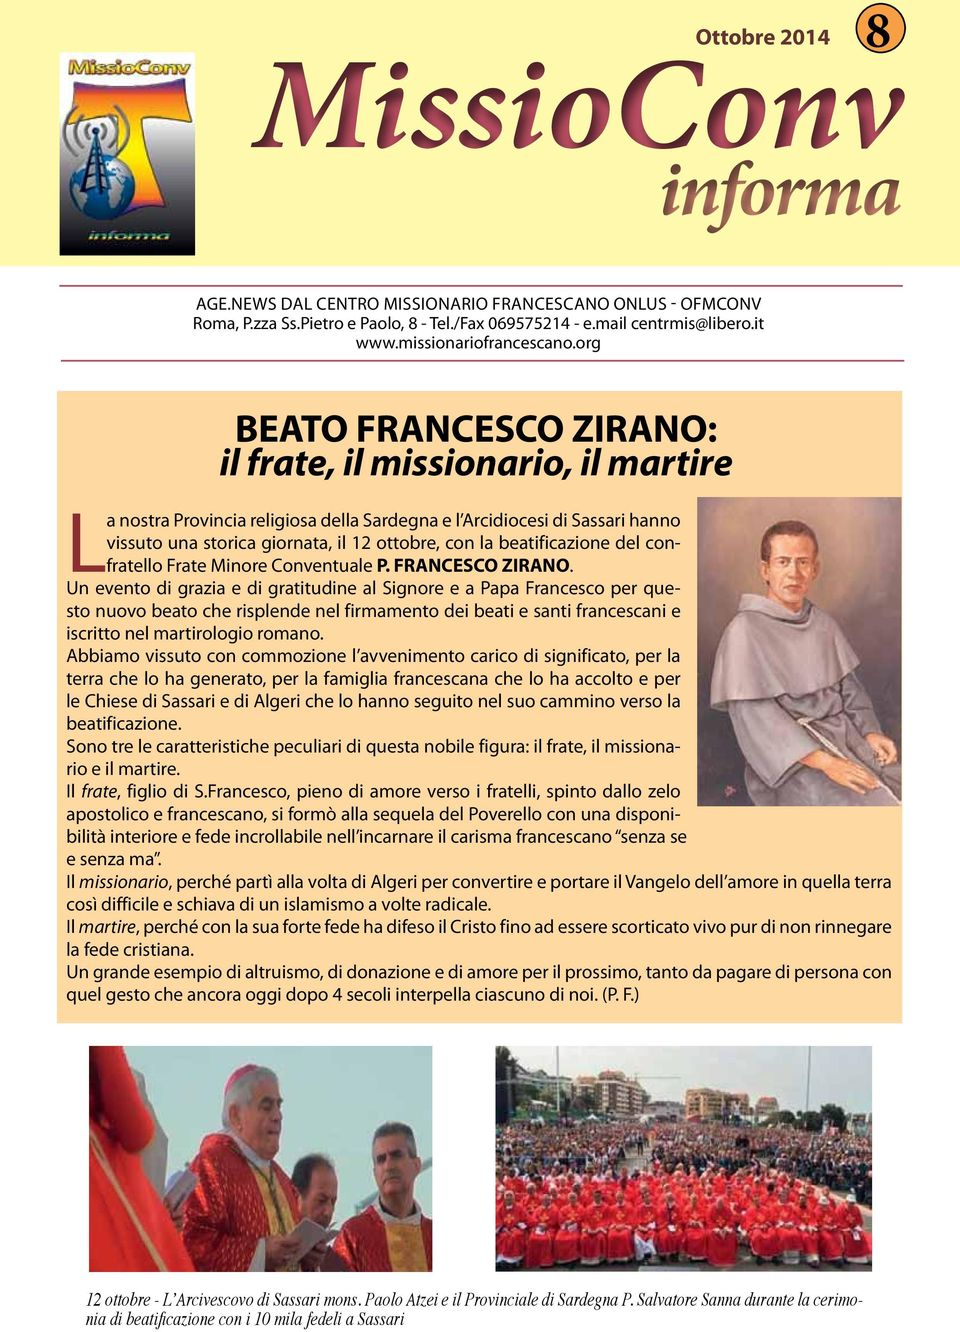 beatificazione del confratello Frate Minore Conventuale P. FRANCESCO ZIRANO.